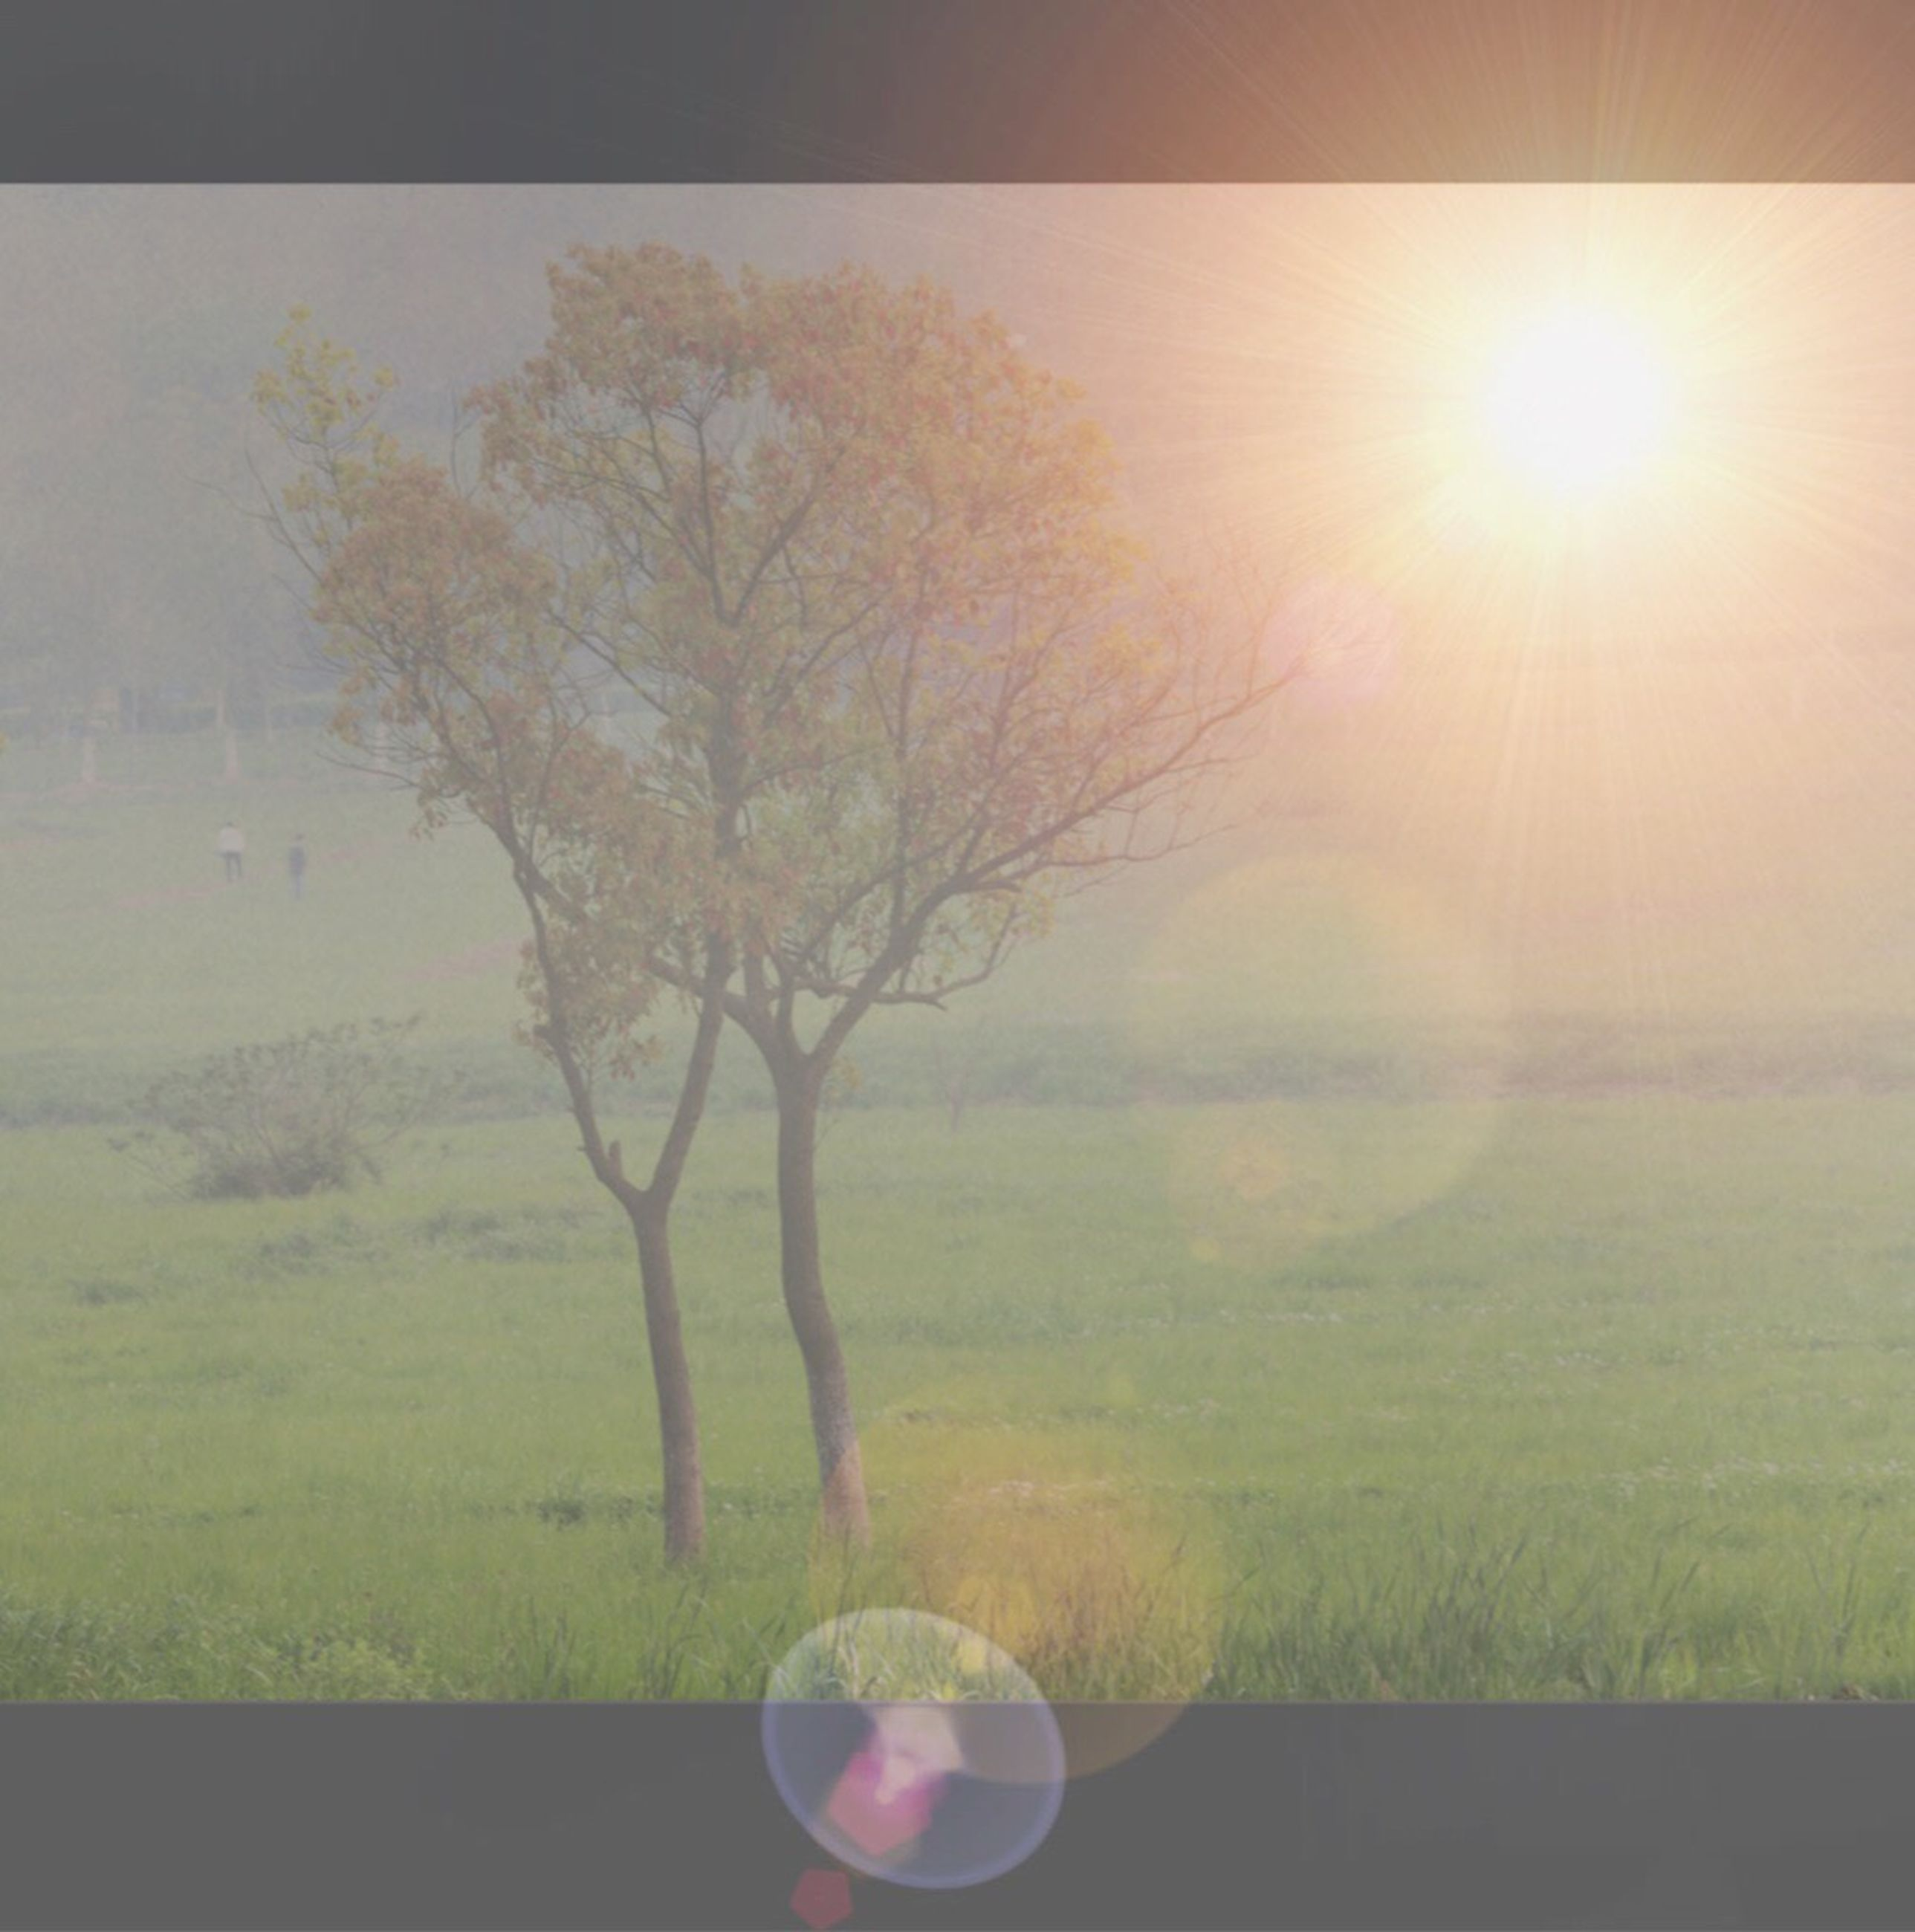 sun, sunbeam, lens flare, sunlight, tree, grass, field, nature, tranquility, beauty in nature, growth, landscape, tranquil scene, sky, bright, scenics, day, no people, plant, sunny